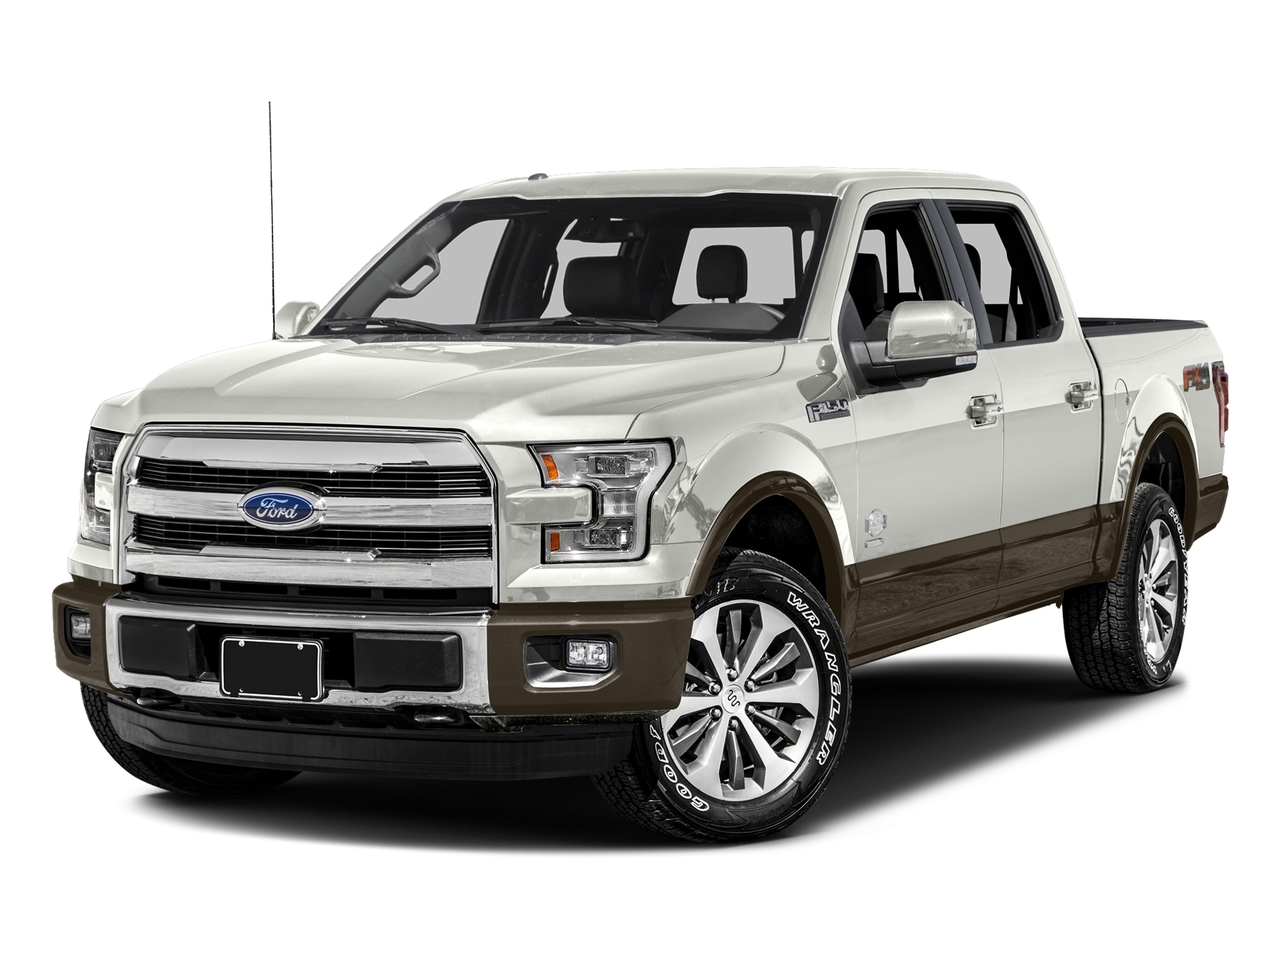 2017 Ford F-150 KING RANCH Crew Cab Pickup Slide